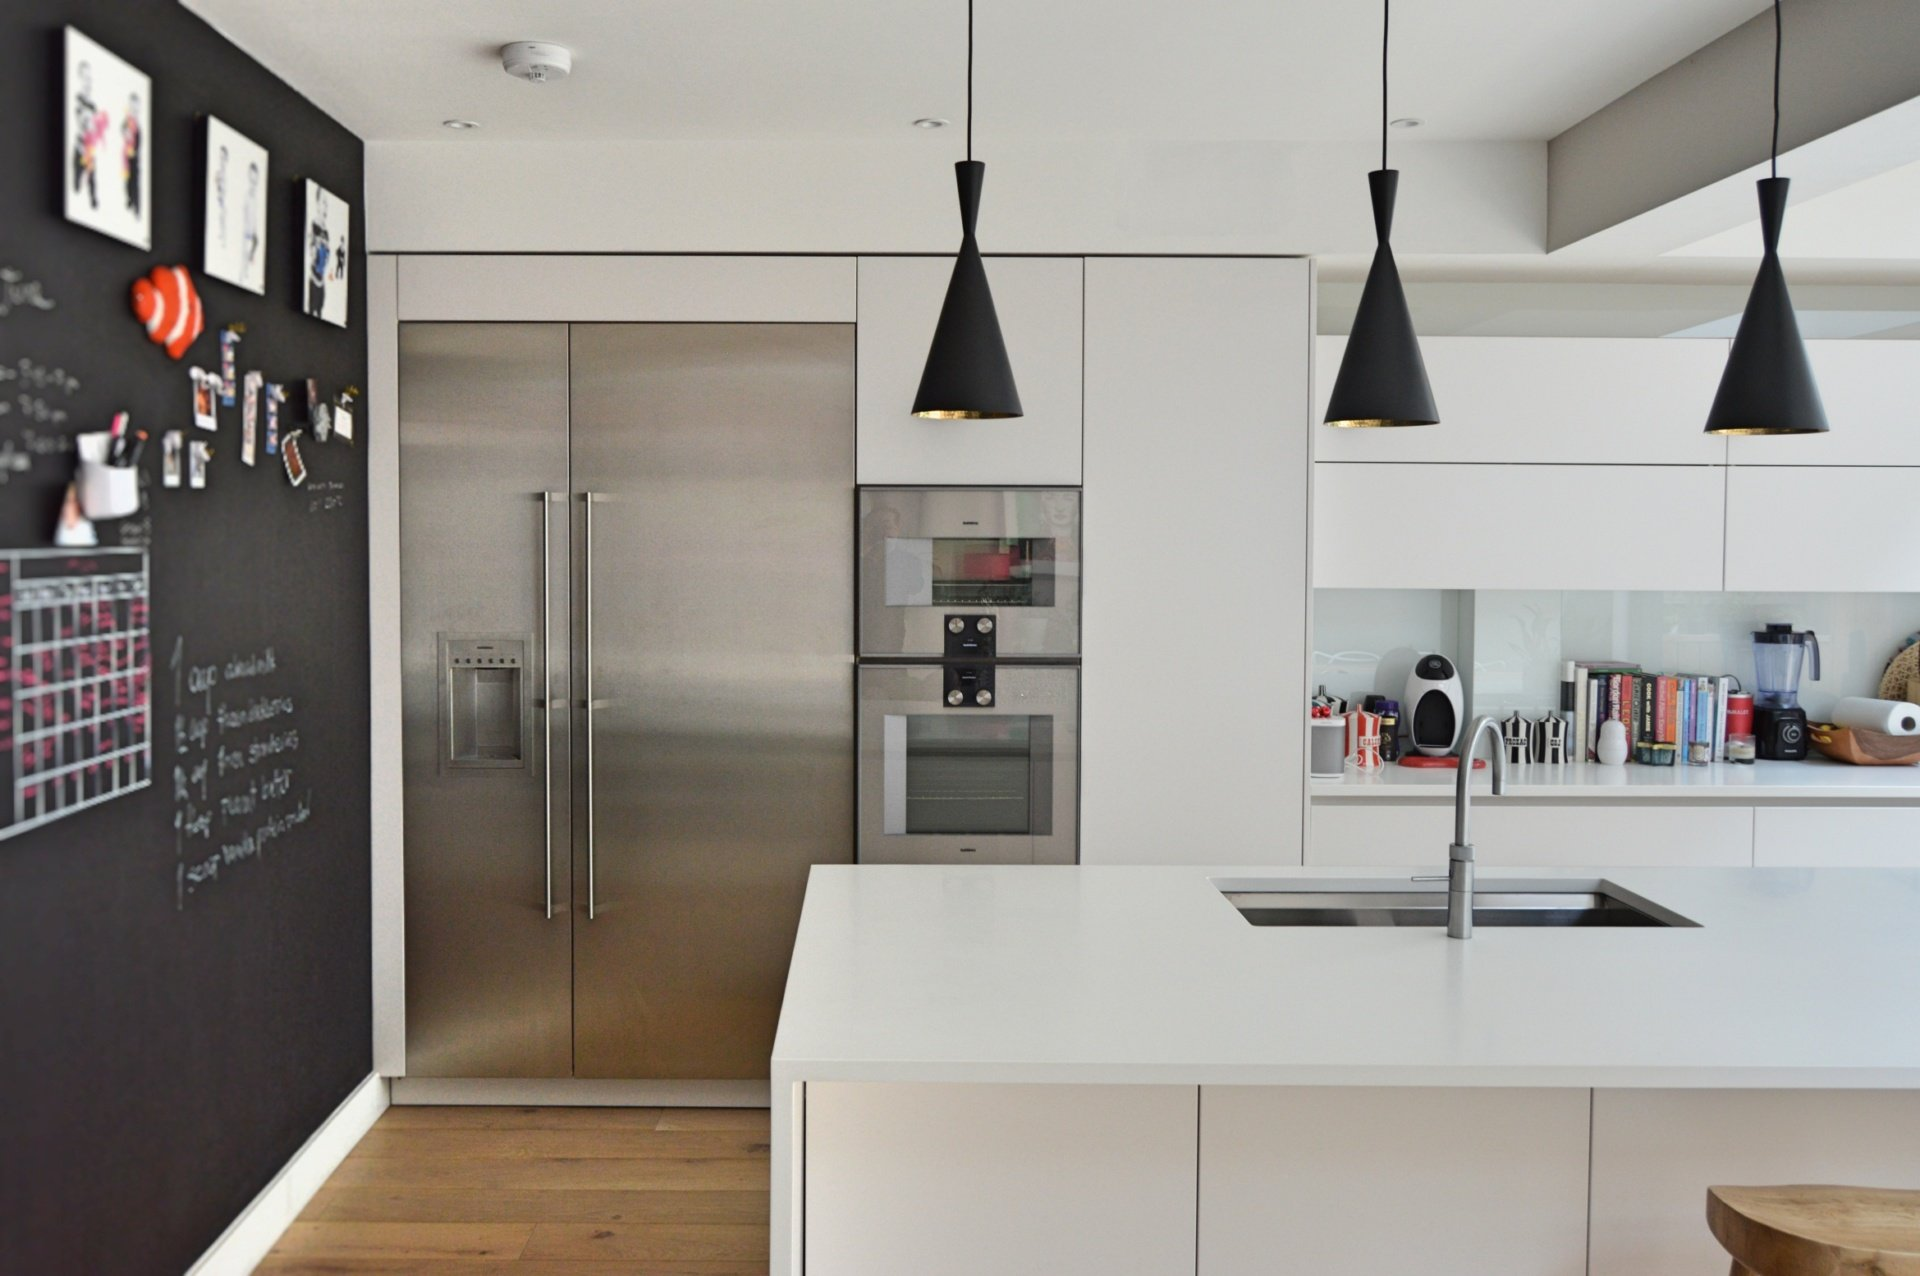 Architect designed rear house extension Highgate Haringey N6 – Kitchen area Highgate, Haringey N6 | Rear house extension